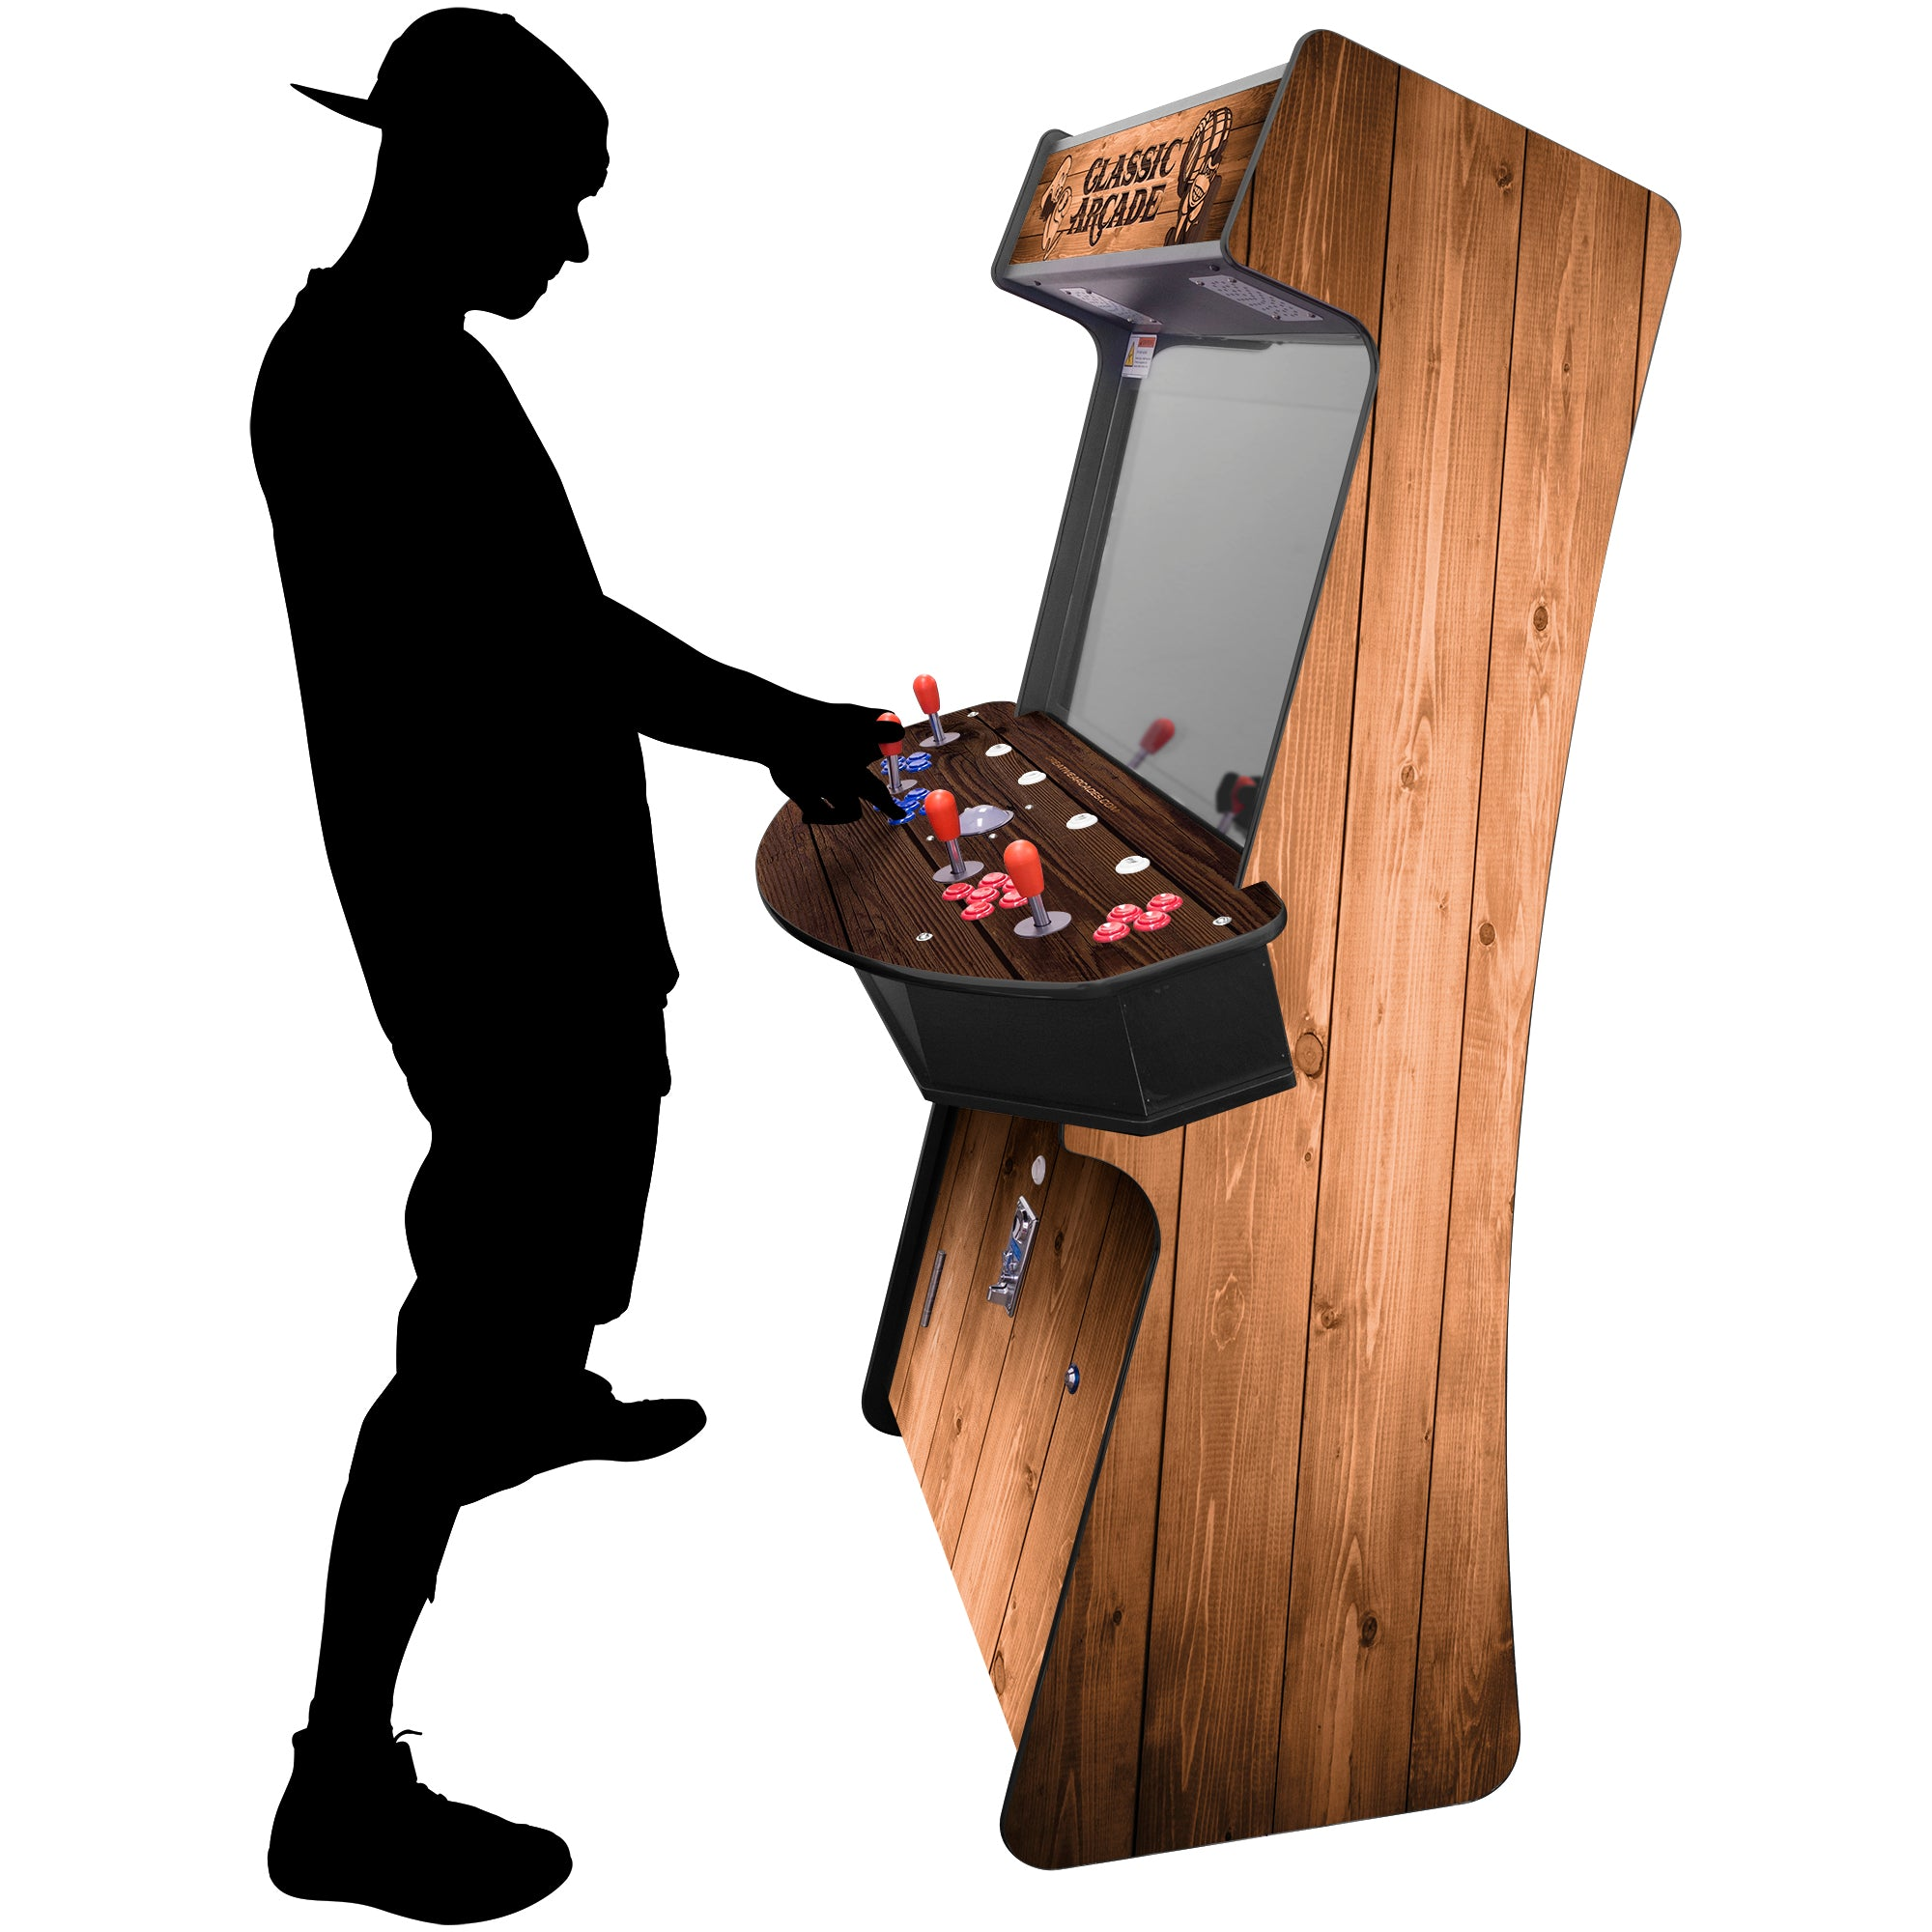 "4 Player Slim Stand Up Arcade with Trackball | Woodgrain Edition | 3500-4500 Classic Games | 32"" LCD Monitor 